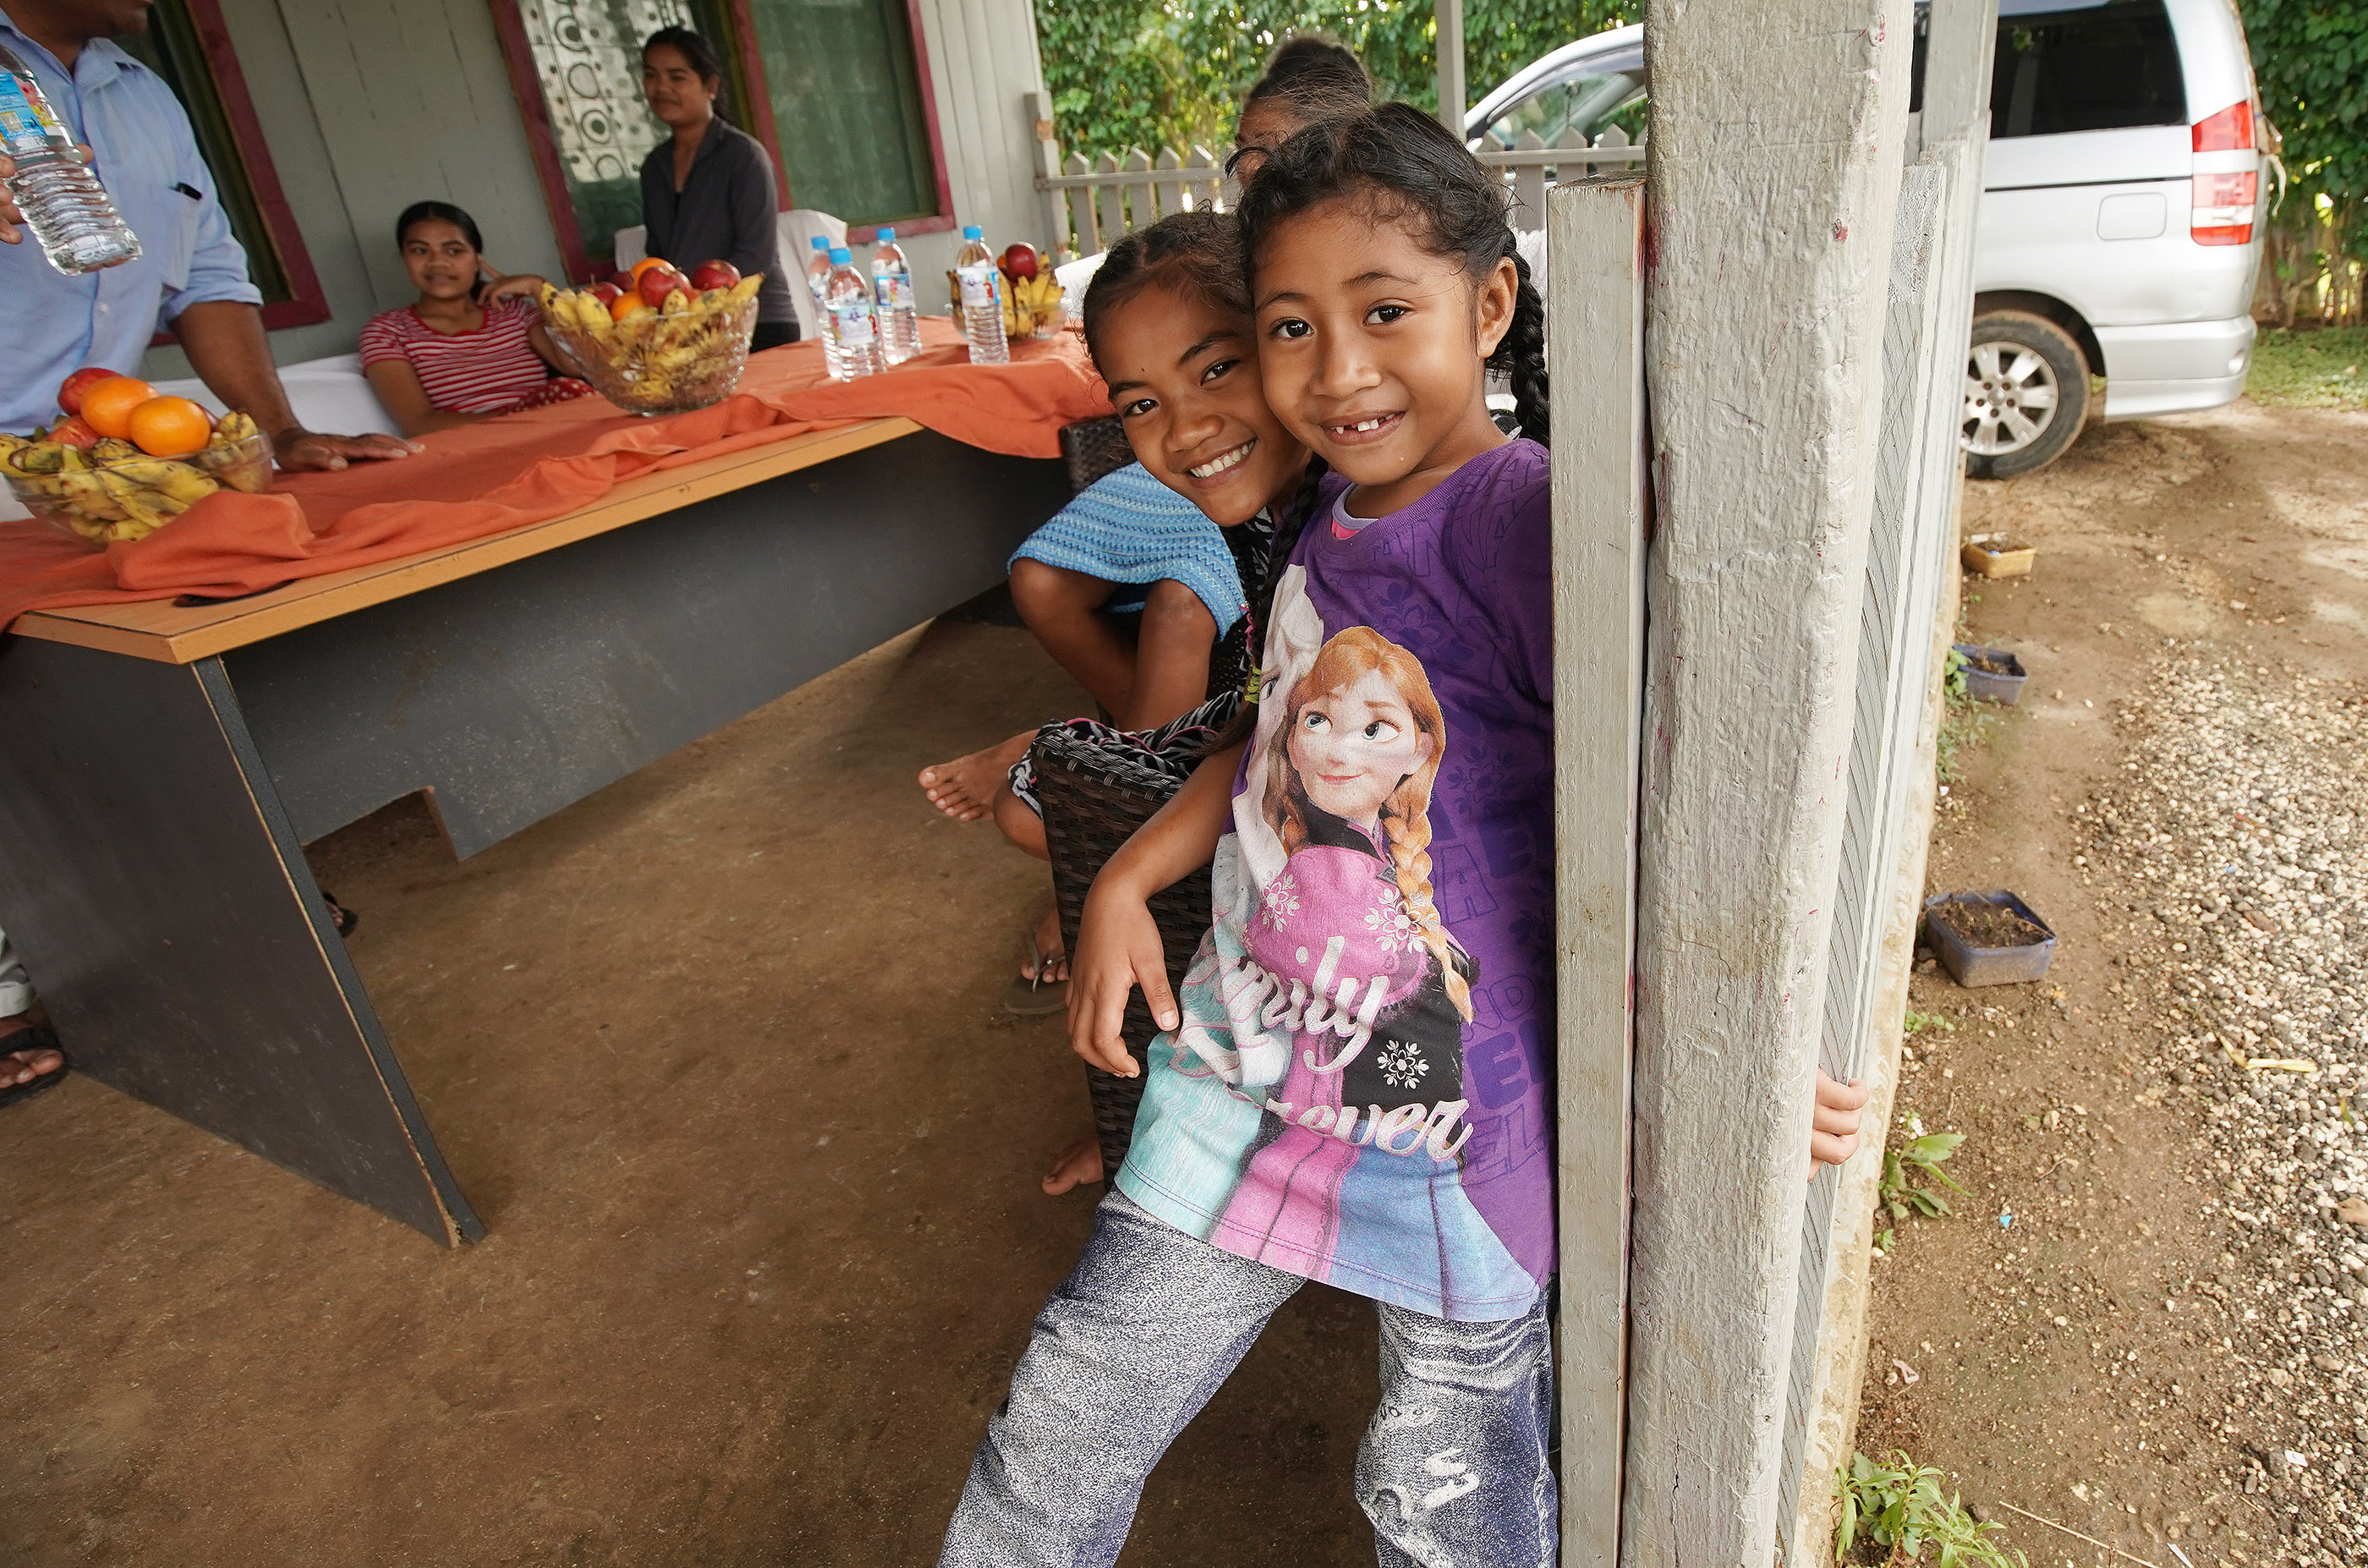 Cousins Katherine Latu and Falakika Latu play at home in Tonga on May 23, 2019. Their dad and uncle Tohiminiti Latu is bishop of his ward has 10 children and one grandchild.